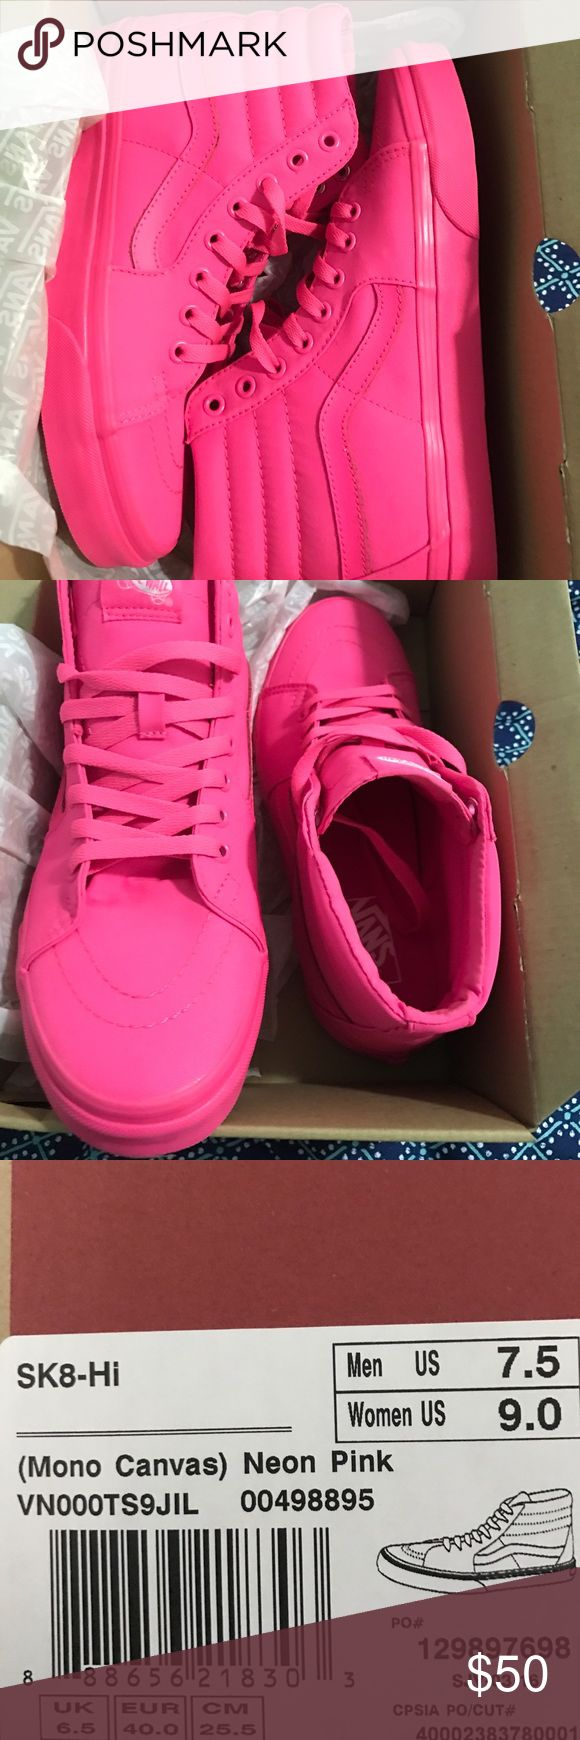 Vans Neon Pink High Top Sneakers These Vans are a size 9 in women's. They're in great condition, only worn twice! They still have their original box and wrapping. Vans Shoes Athletic Shoes